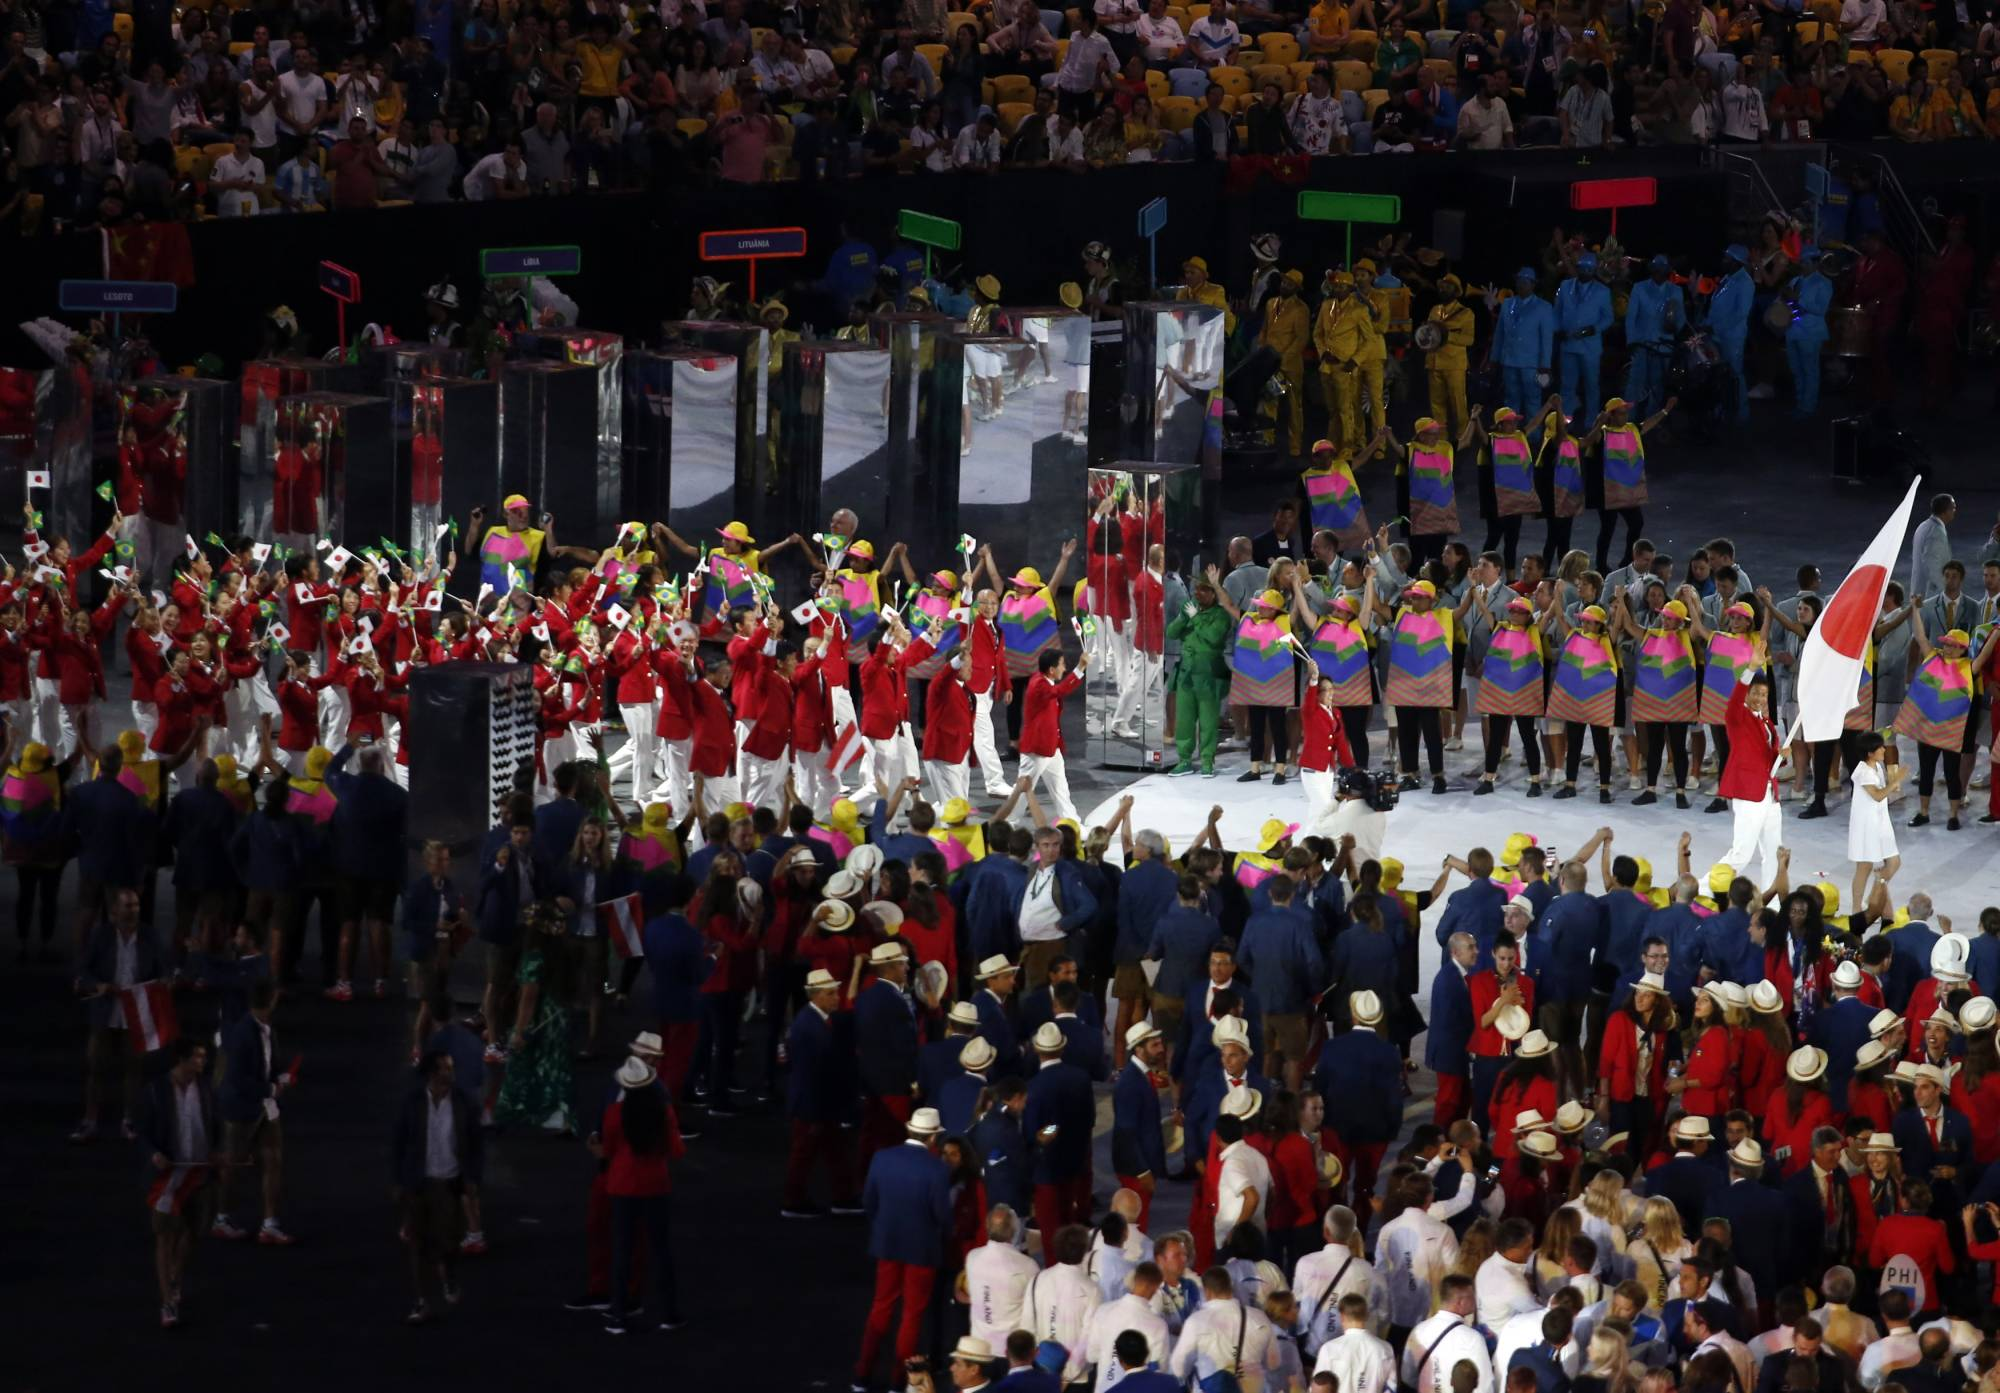 Athletes from Japan parade during the opening ceremony of the 2016 Rio Olympics on Aug. 5, 2016, in Rio de Janeiro. | REUTERS